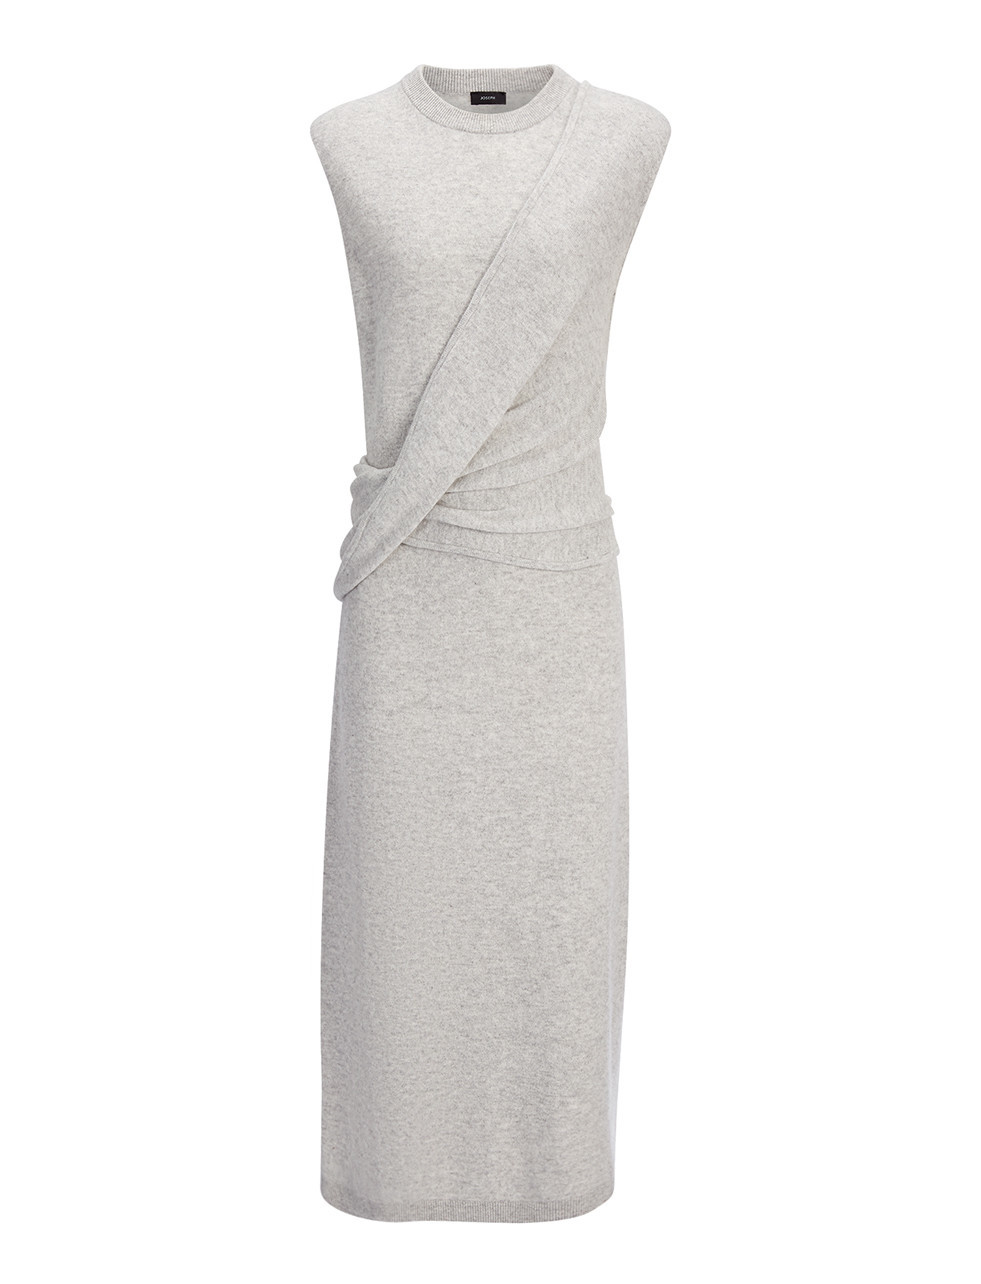 Soft Wool Feli Dress In Marble - style: shift; length: calf length; pattern: plain; sleeve style: sleeveless; neckline: high neck; bust detail: subtle bust detail; predominant colour: light grey; occasions: evening; fit: body skimming; fibres: wool - mix; sleeve length: sleeveless; texture group: knits/crochet; pattern type: fabric; season: s/s 2016; wardrobe: event